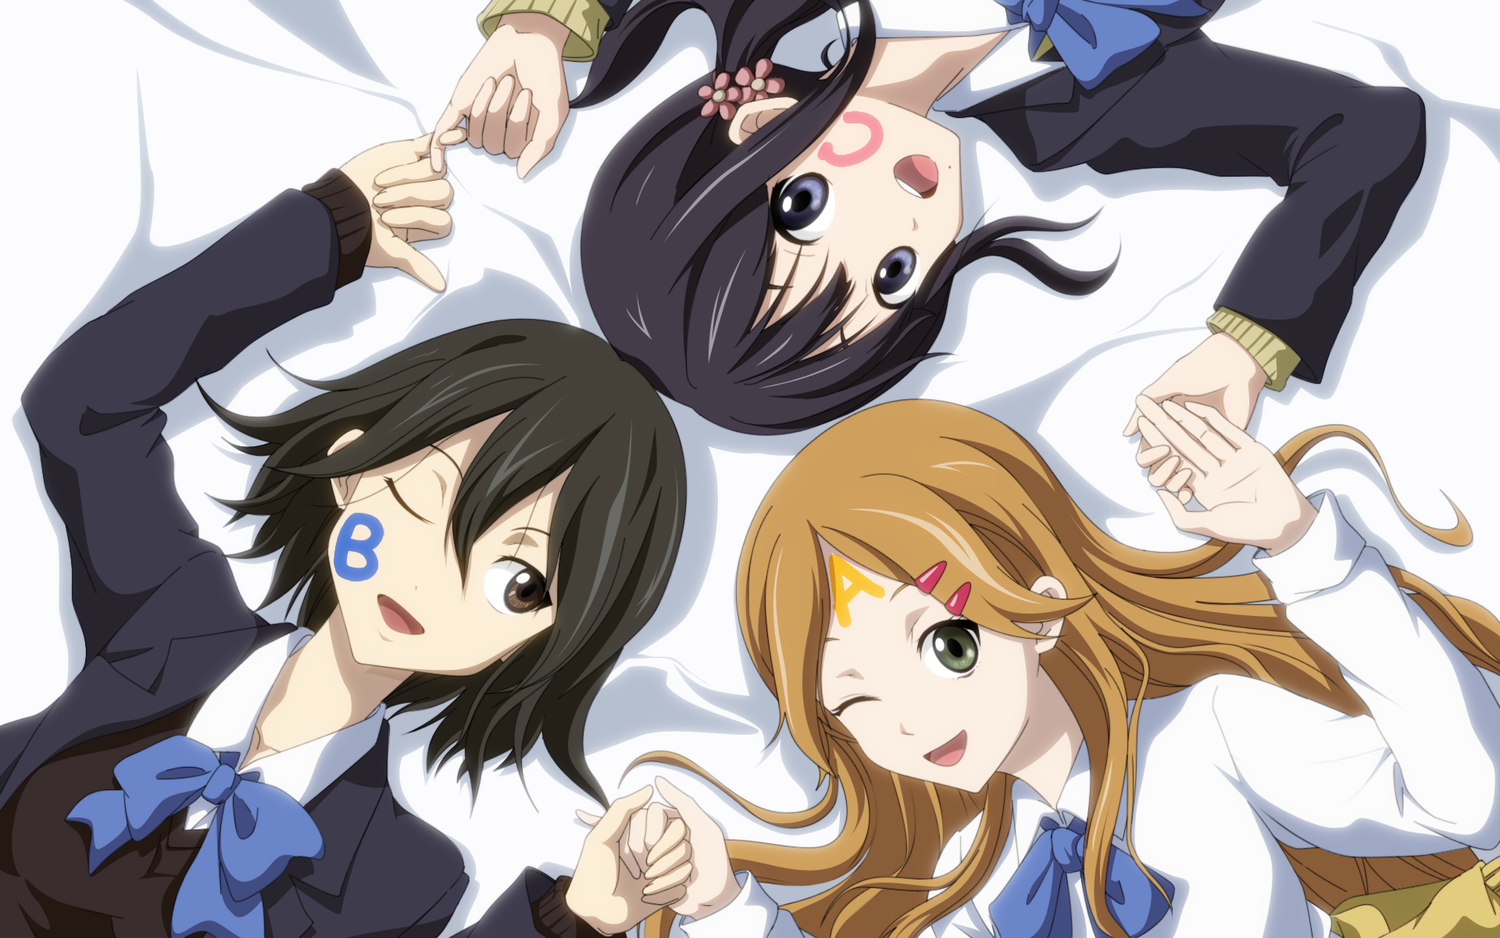 black_eyes black_hair blonde_hair brown_eyes brown_hair green_eyes inaba_himeko kiriyama_yui kokoro_connect kouchou_(artist) long_hair nagase_iori ribbons seifuku short_hair wink